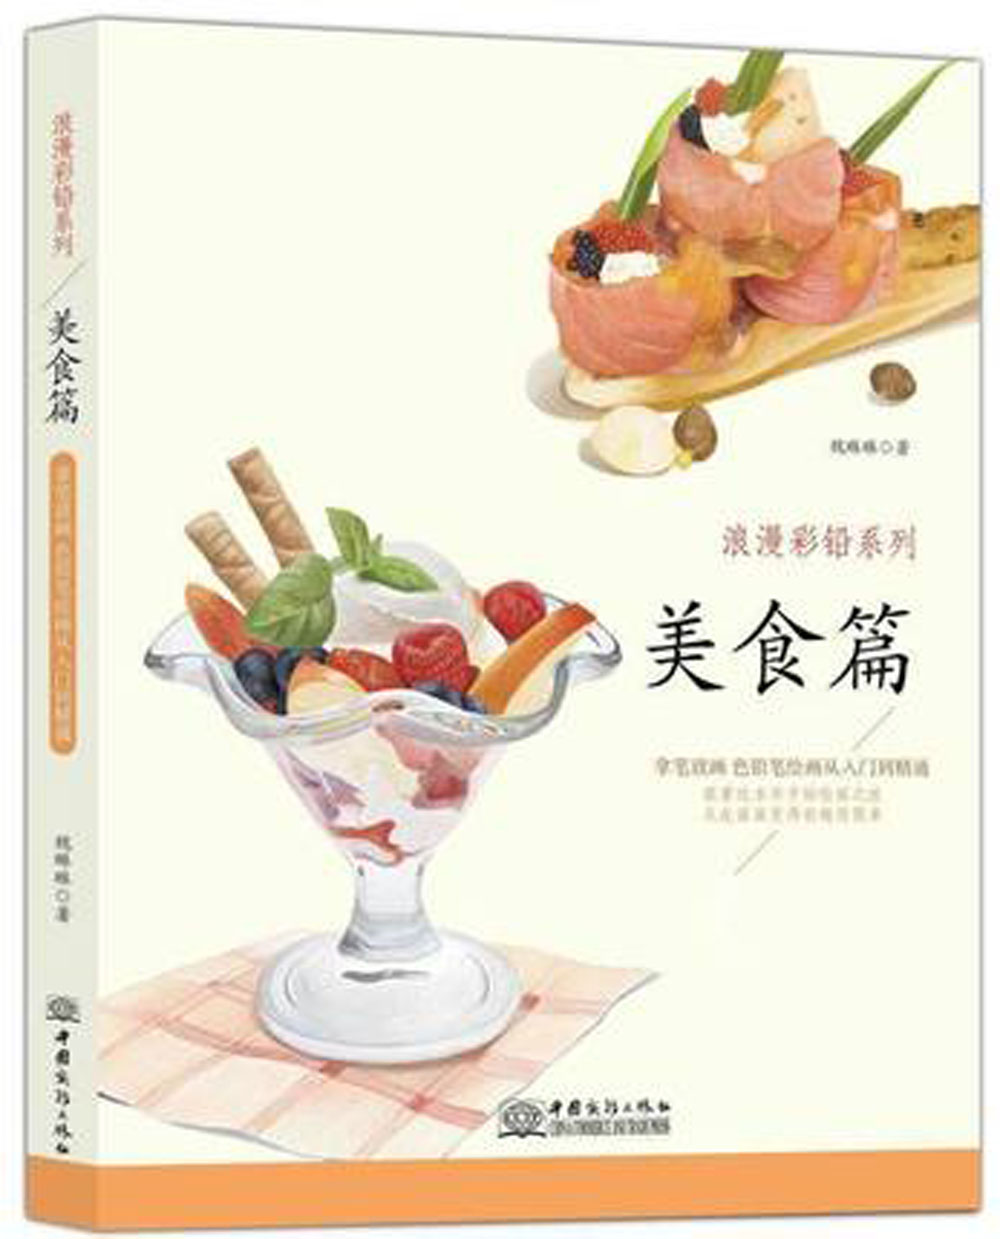 Delicious food Color Pencil Drawing book chinese art techniques Painting Book textbook chinese pencil drawing book 38 kinds of flower painting watercolor color pencil textbook tutorial art book